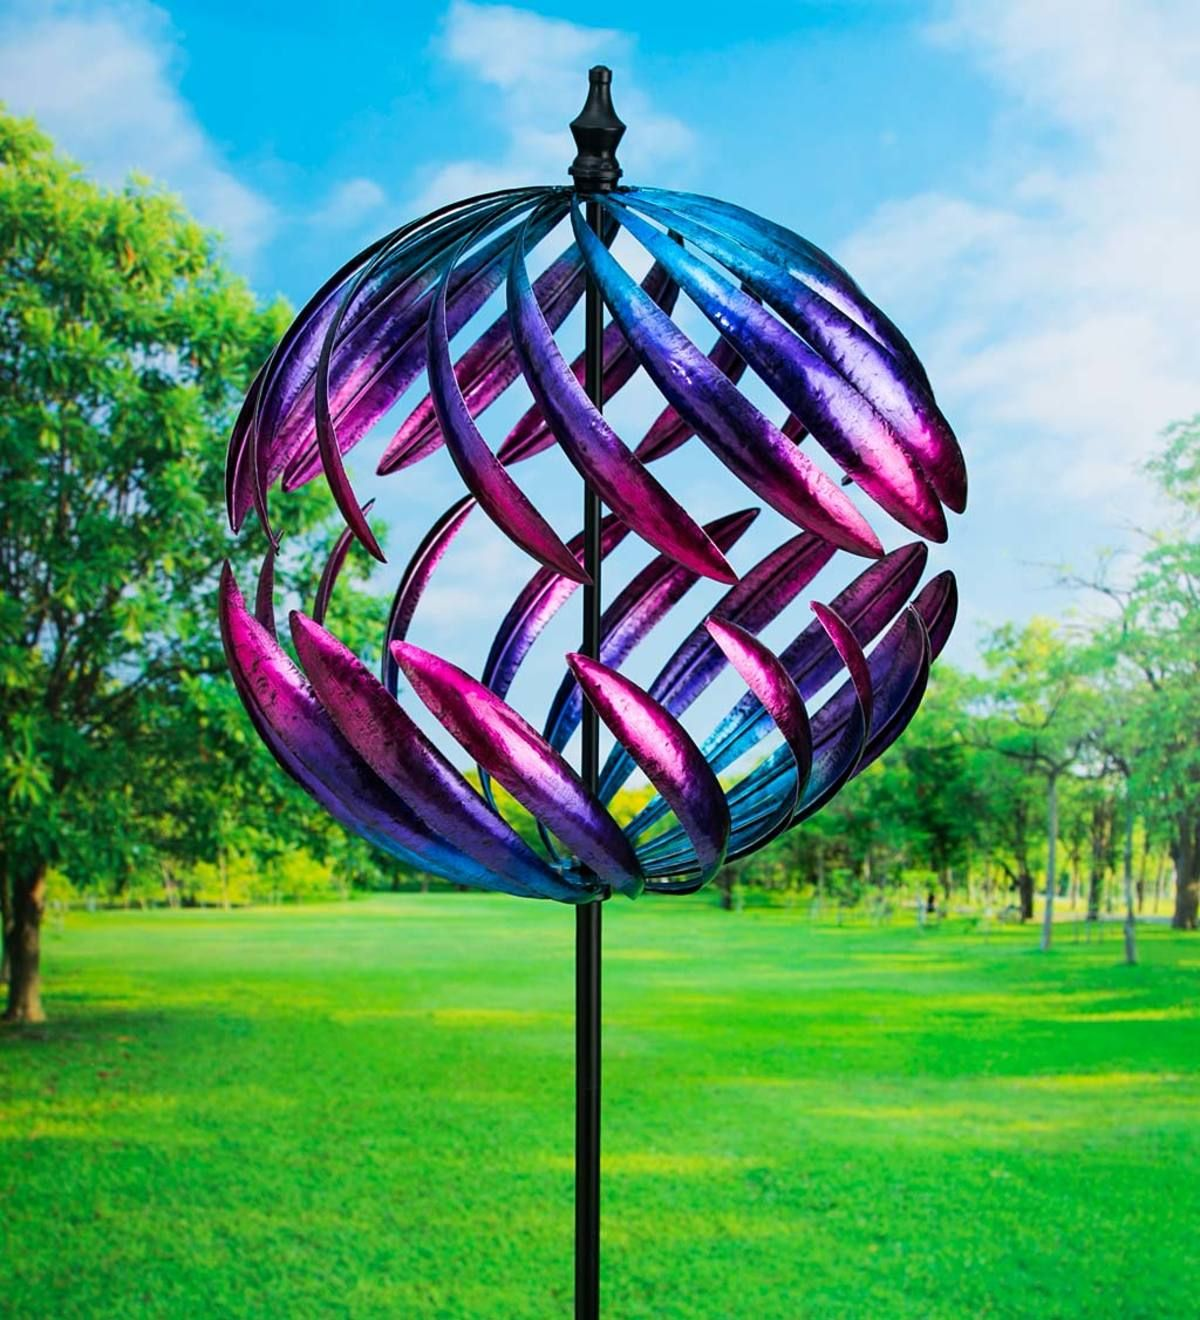 Oversized Split Sphere Metal Wind Spinner Plowhearth In 2020 Metal Wind Spinners Wind Spinners Garden Wind Spinners